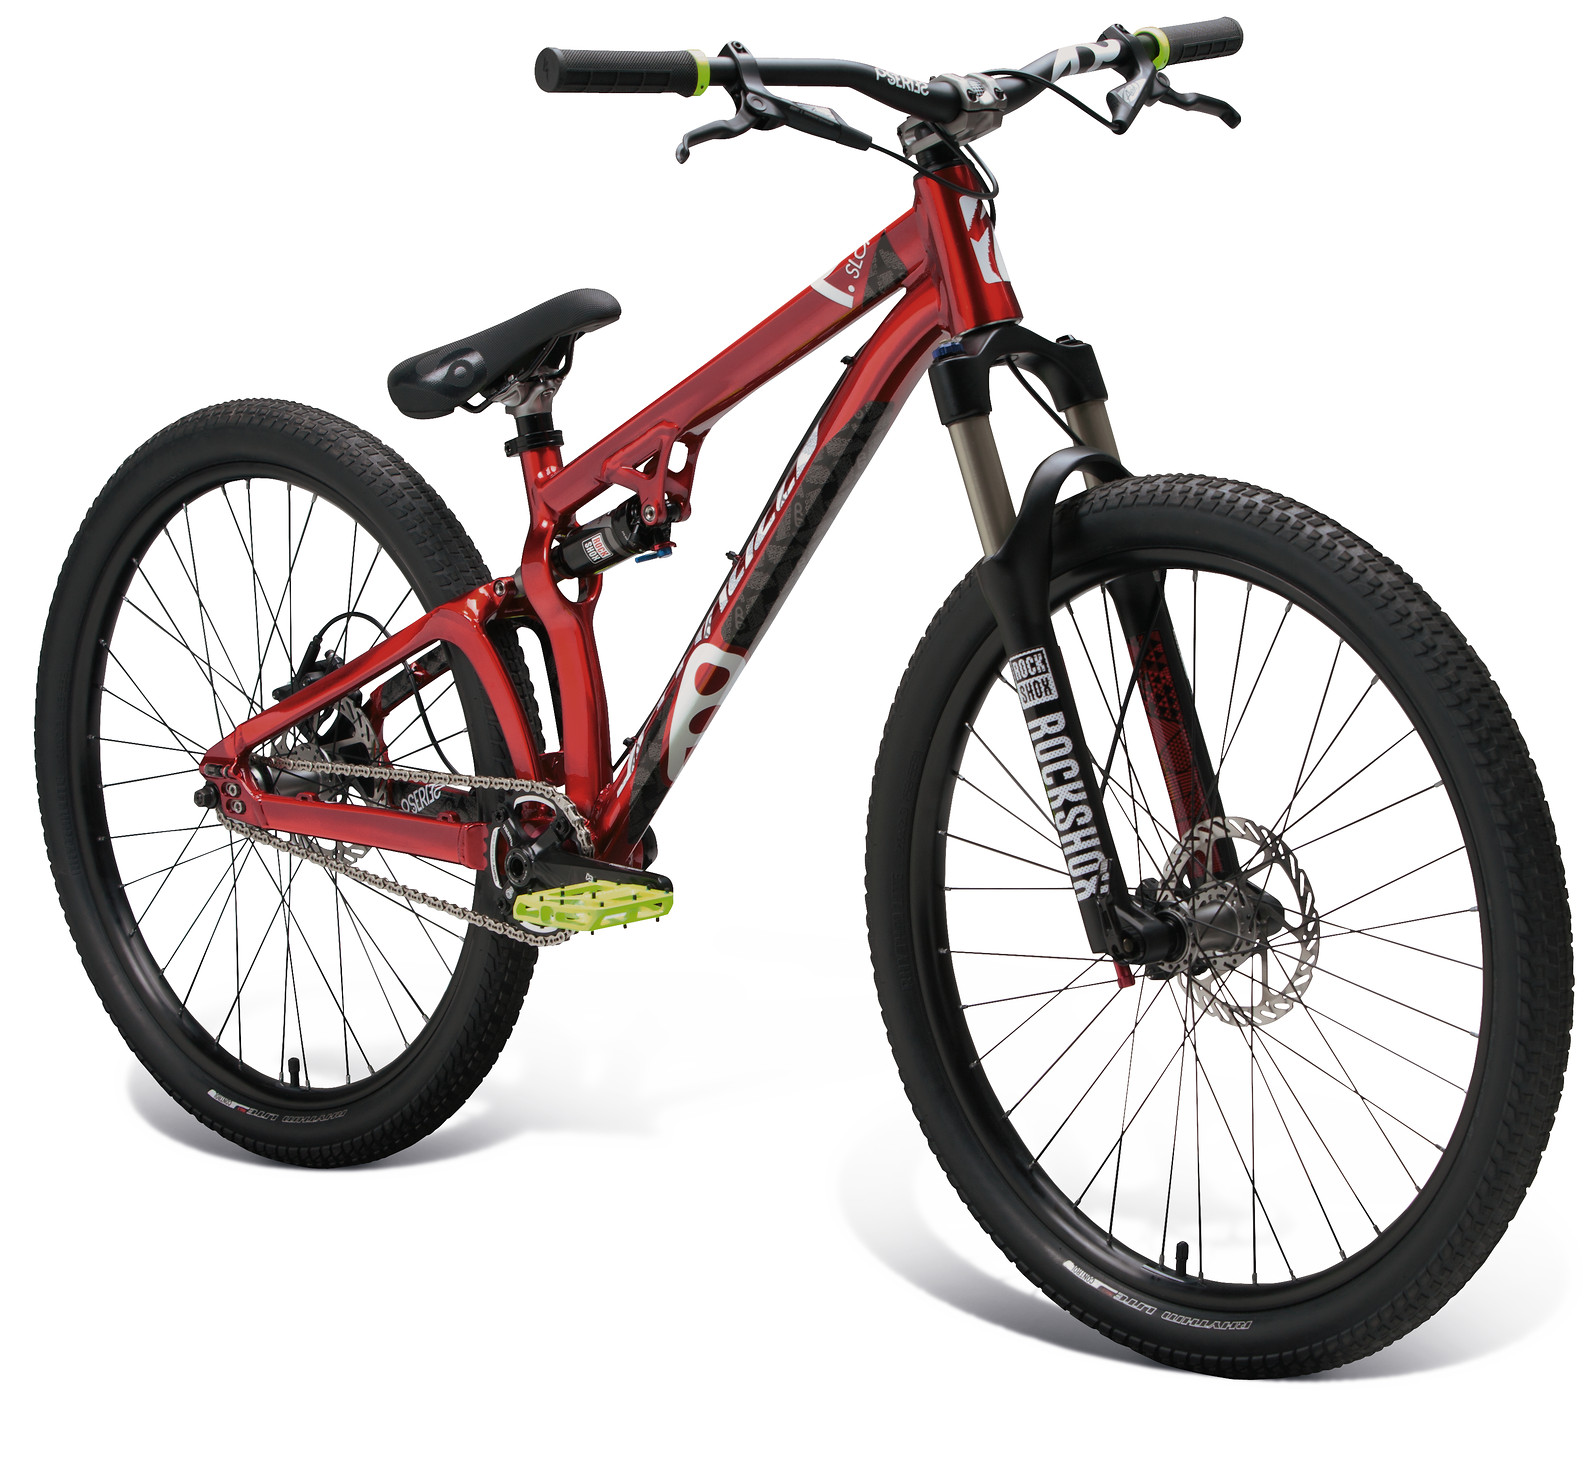 2013 Specialized P.Slope Bike 91E9-8122-p-slope-bru_tc_red_TB_flat